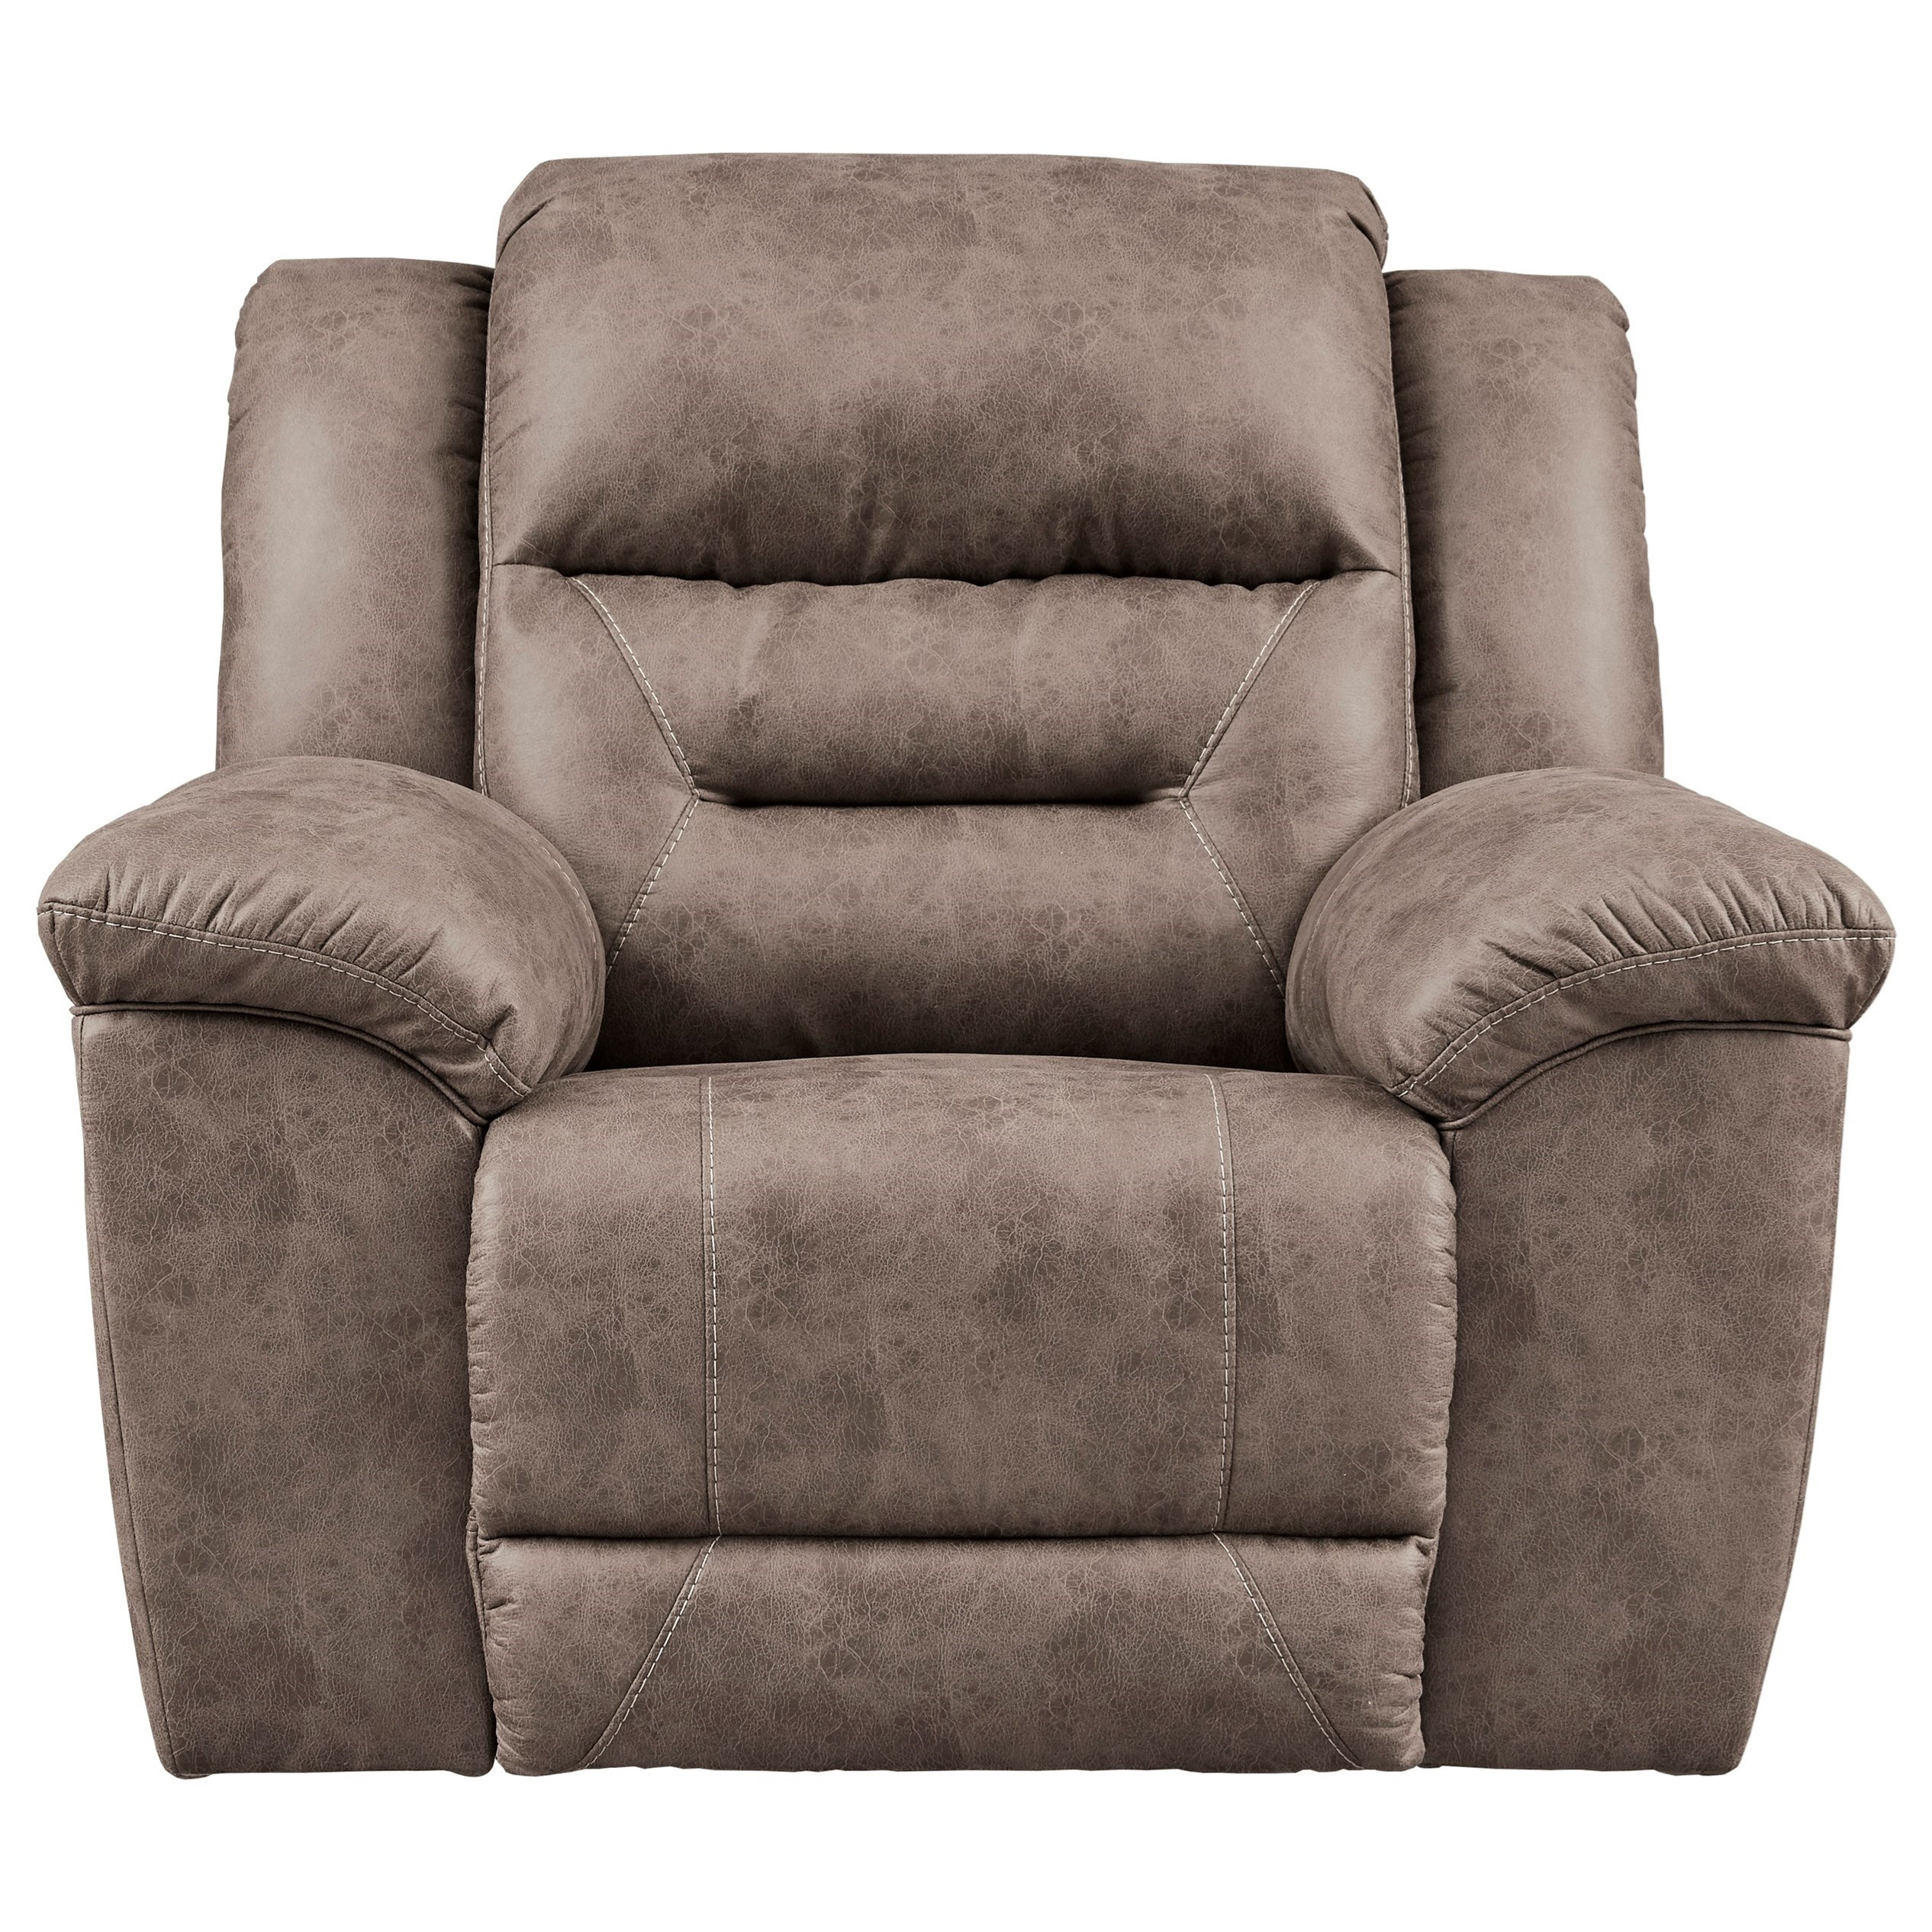 Stoneland Rocker Recliner by Ashley (Signature Design) at Johnny Janosik